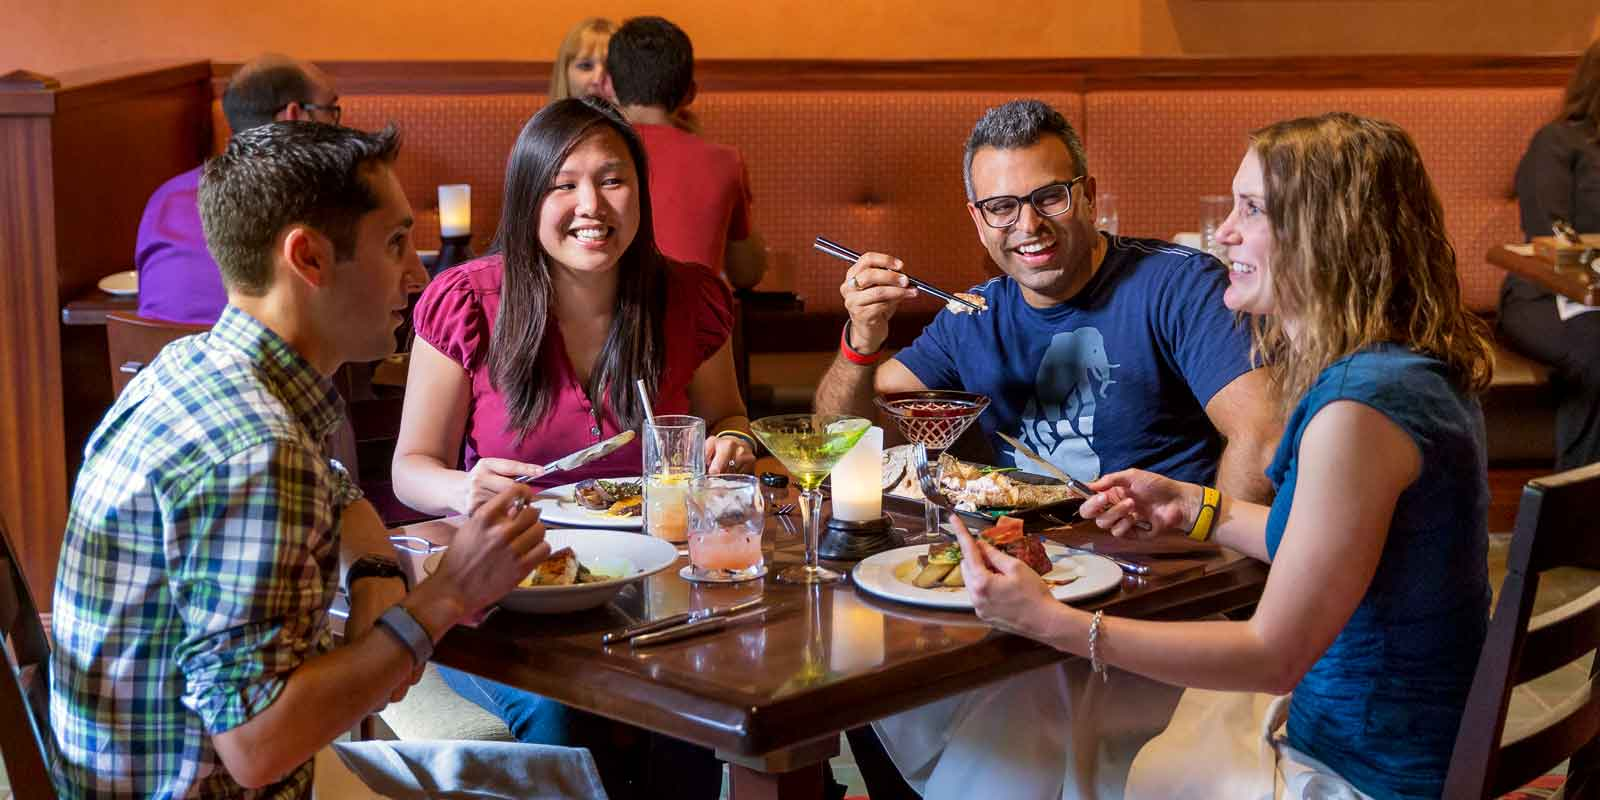 A group of adults enjoy a meal at Animal Kingdom's Tiffins restaurant.